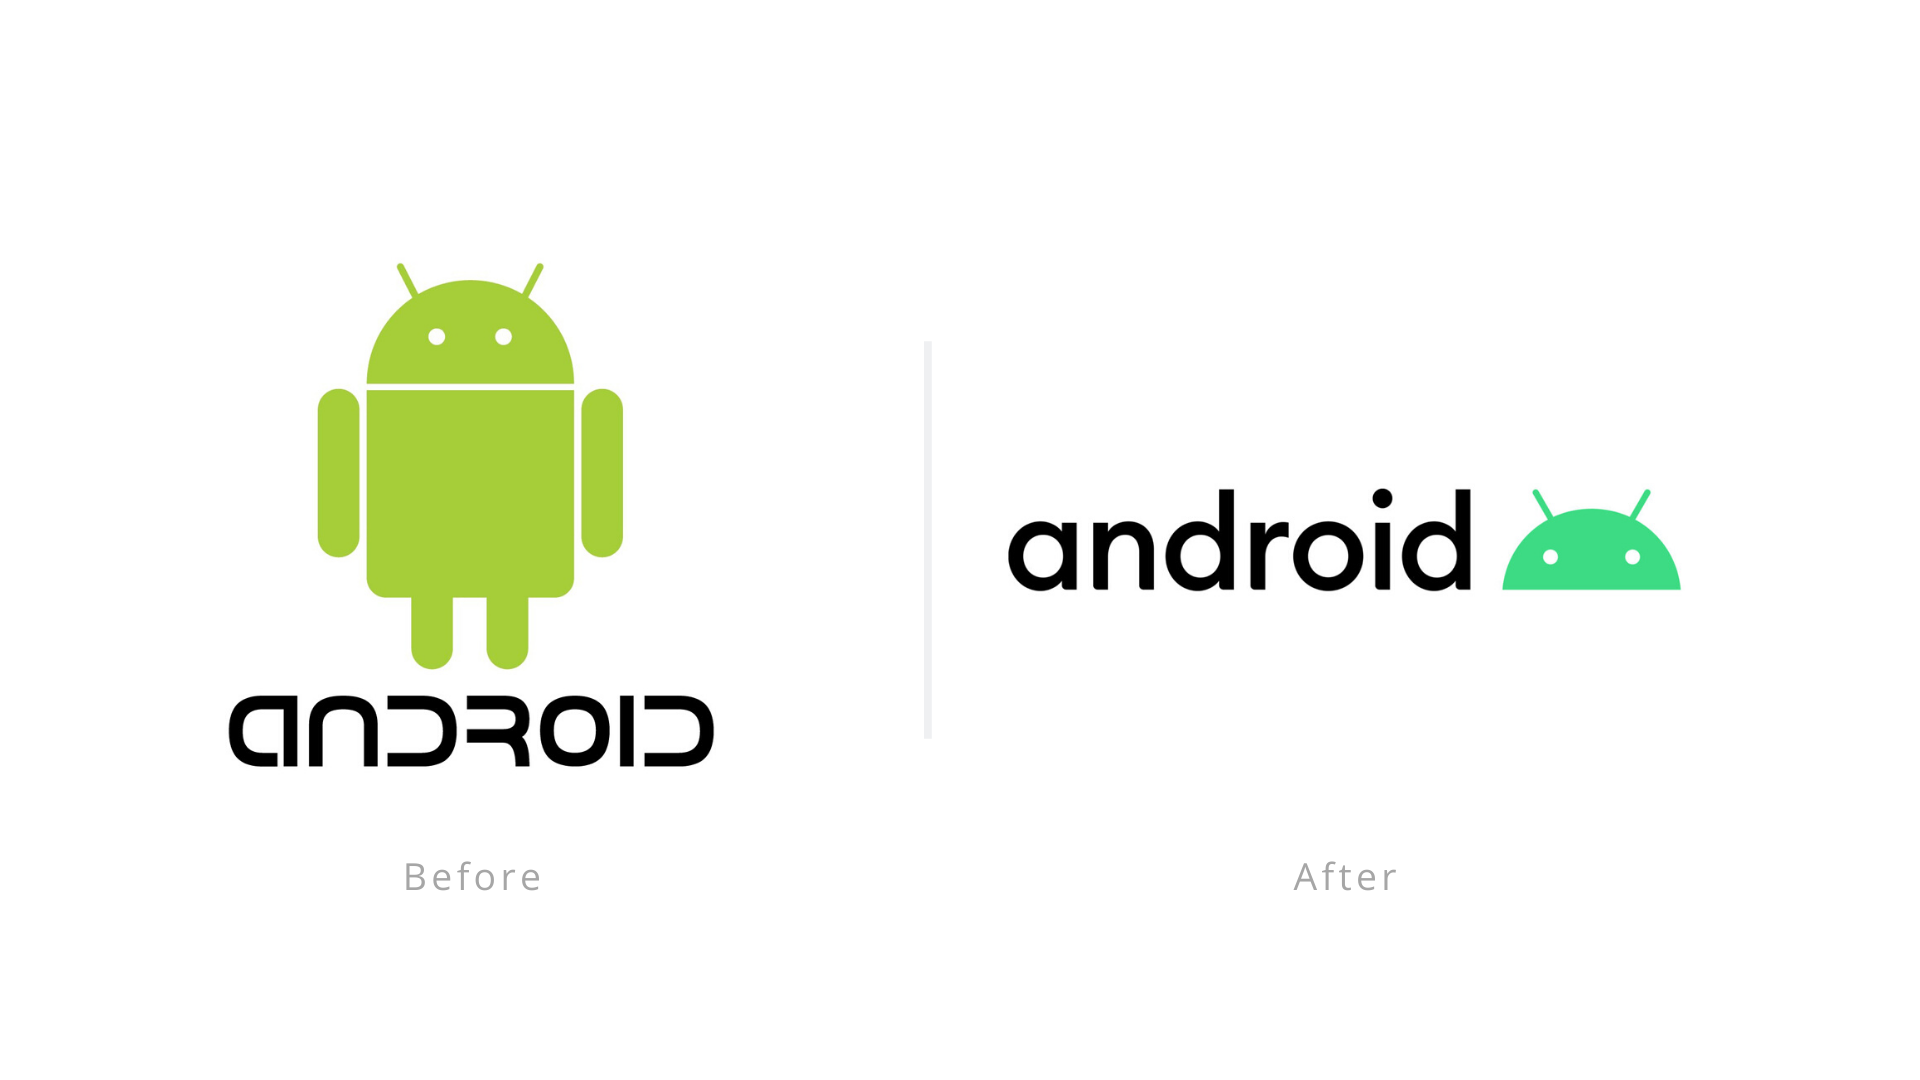 Android logo before and after image